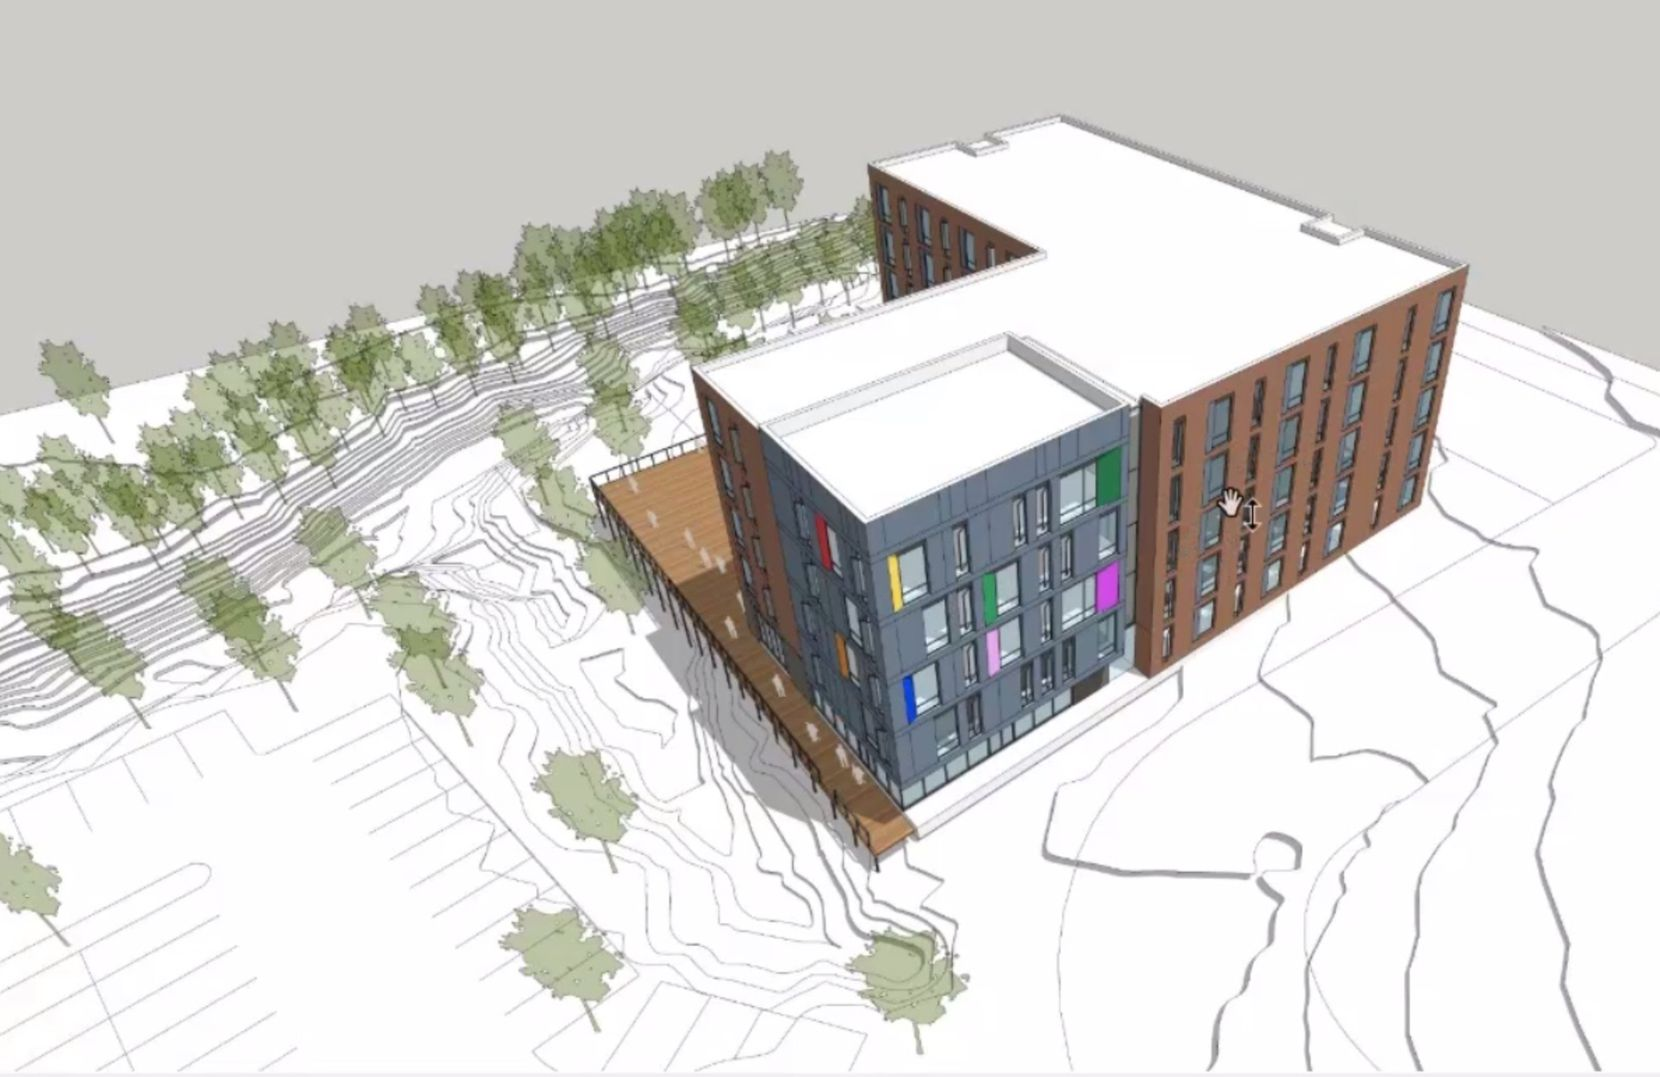 The five-story rental community is planned for a site near Inwood Road and Maple Avenue.